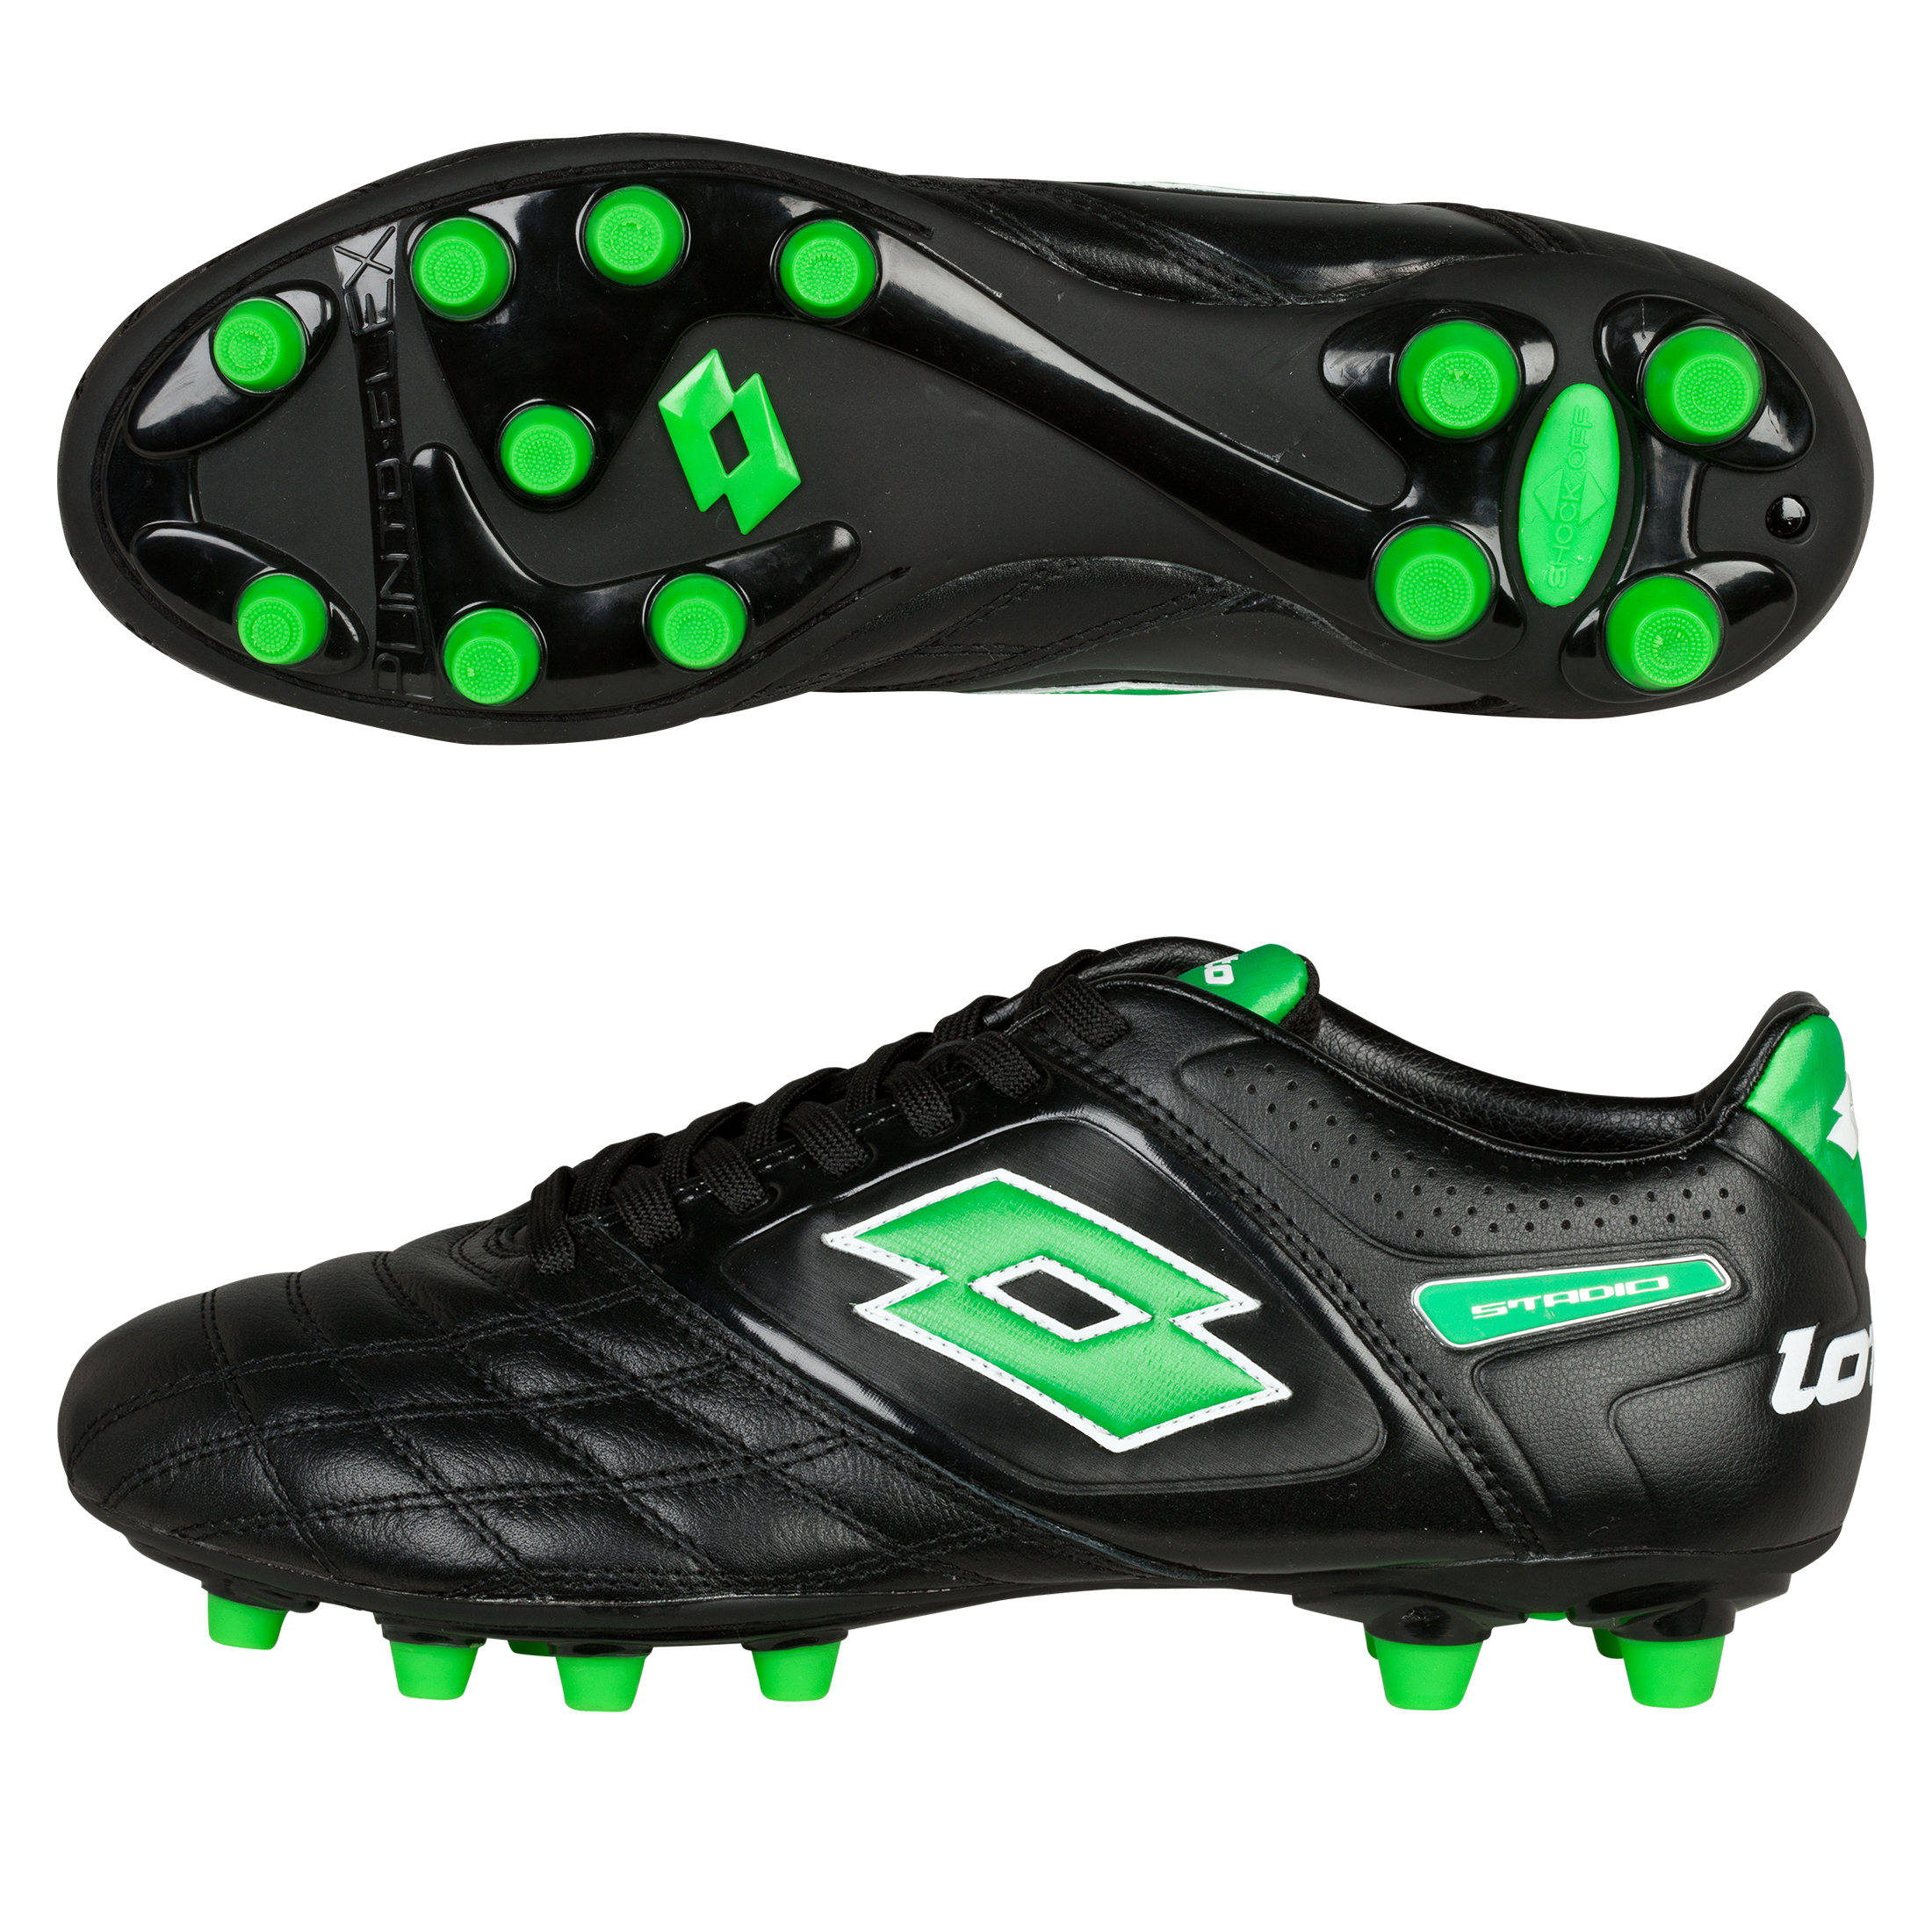 Lotto Stadio Potenza II 300 FG Black/MN Green